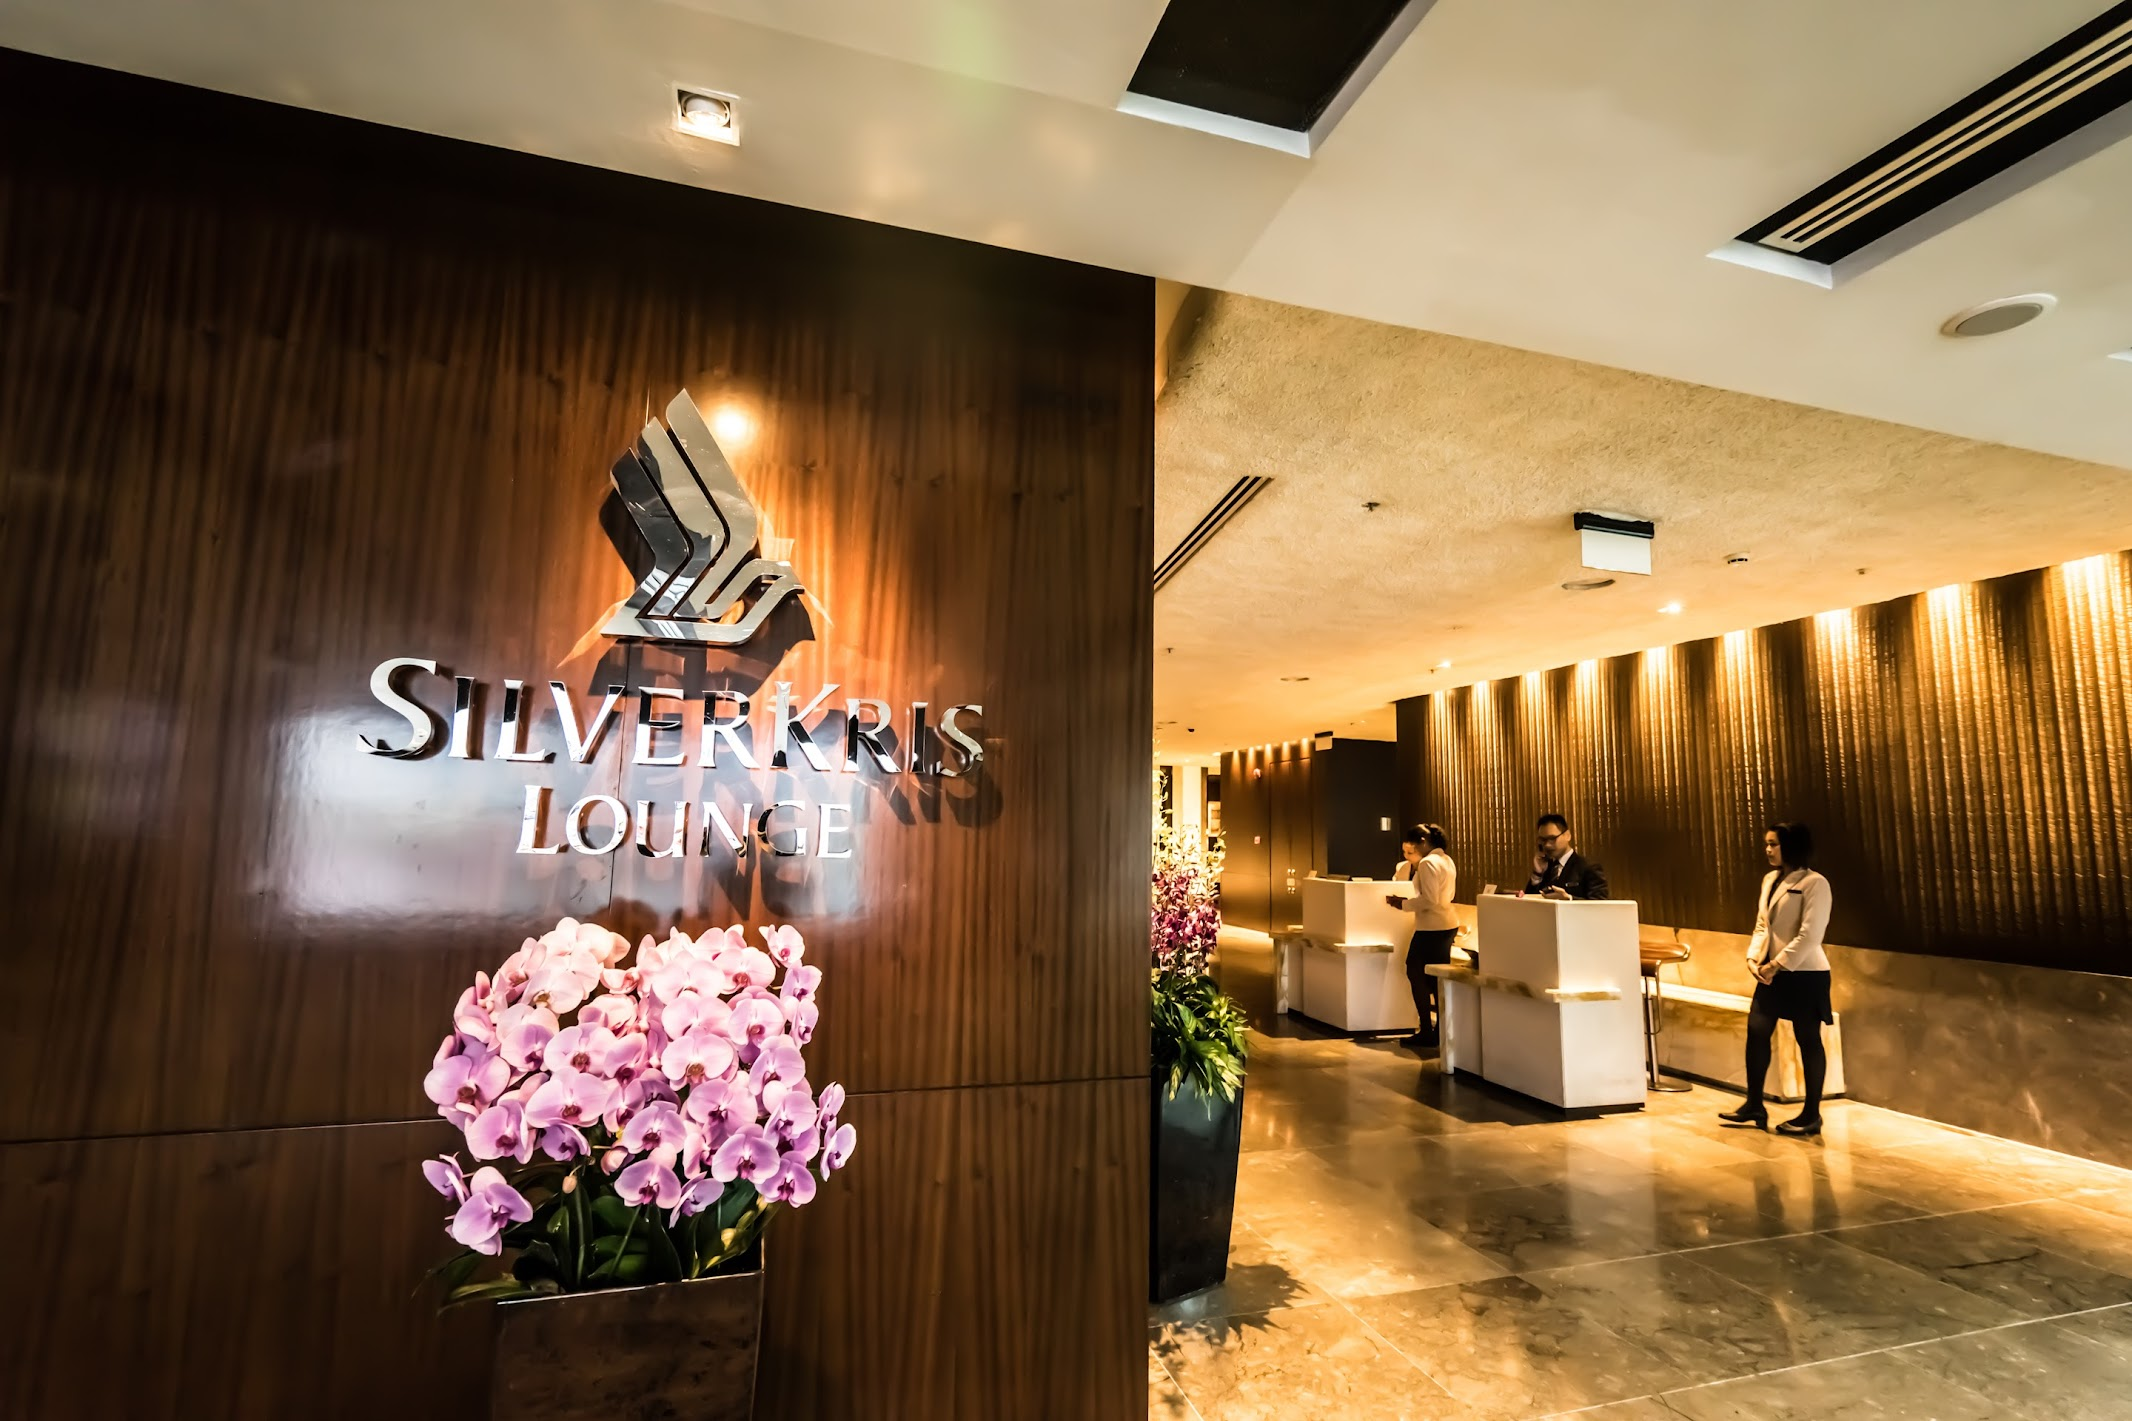 Singapore Airlines Changi airport SilverKris Lounge1